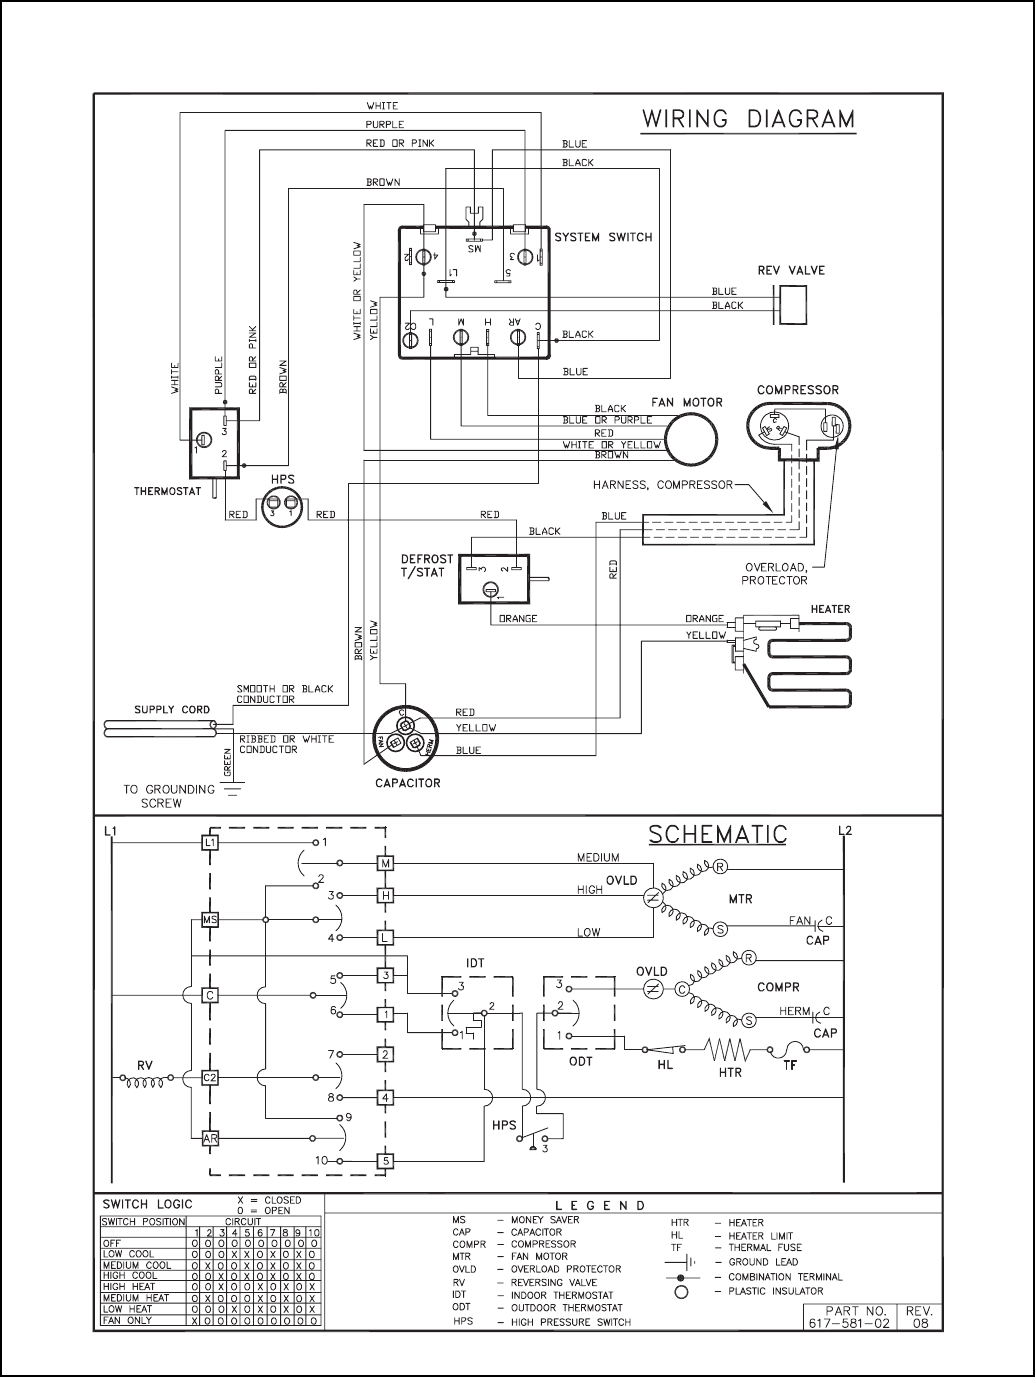 air conditioner wiring diagram pdf stator page 25 of friedrich wy13b33a-b user guide | manualsonline.com